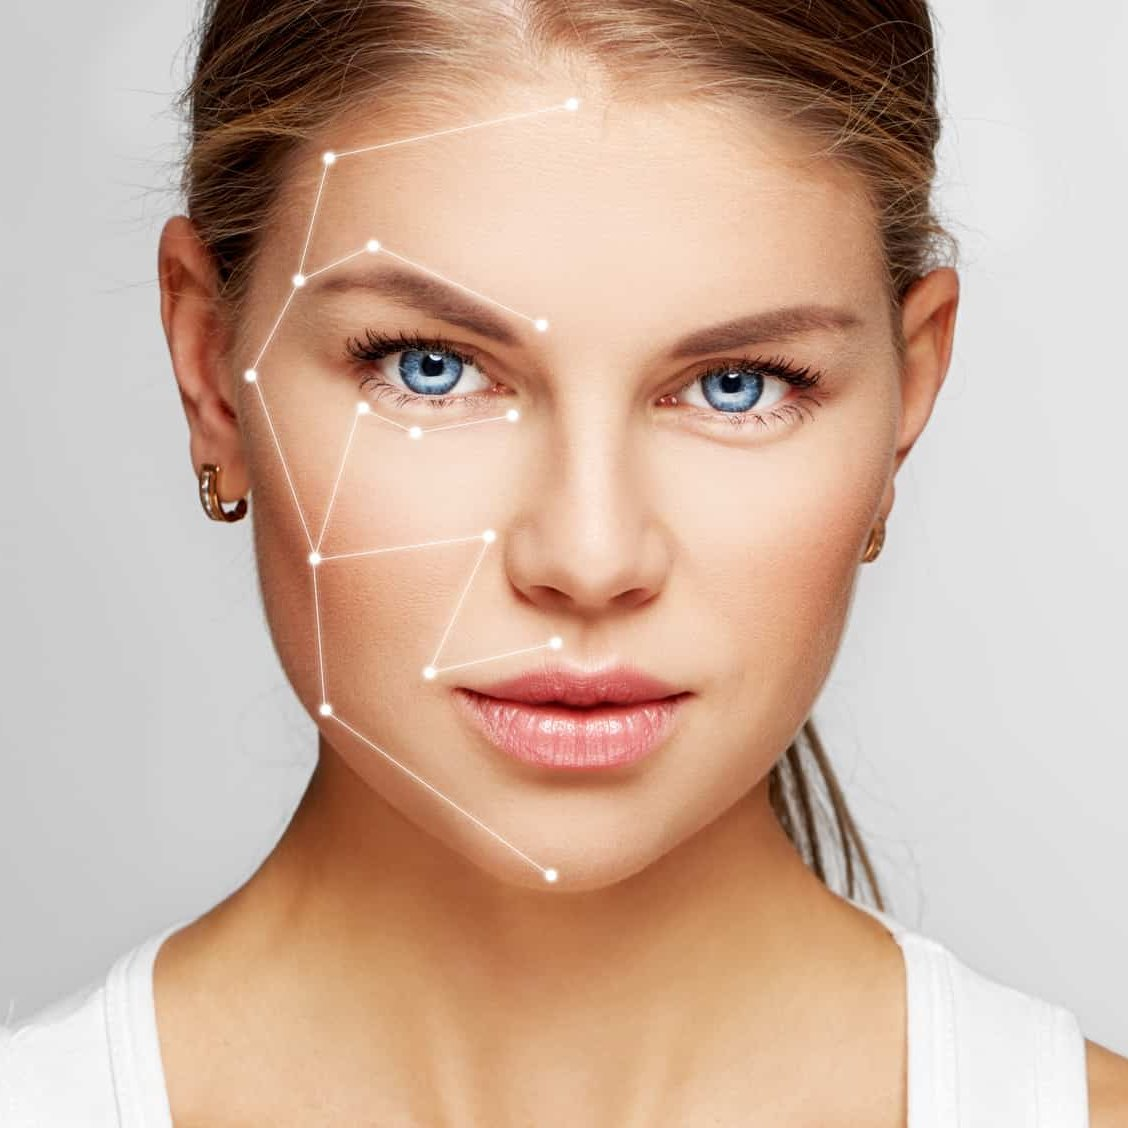 Skin care and technology. Portrait of beautiful woman face with